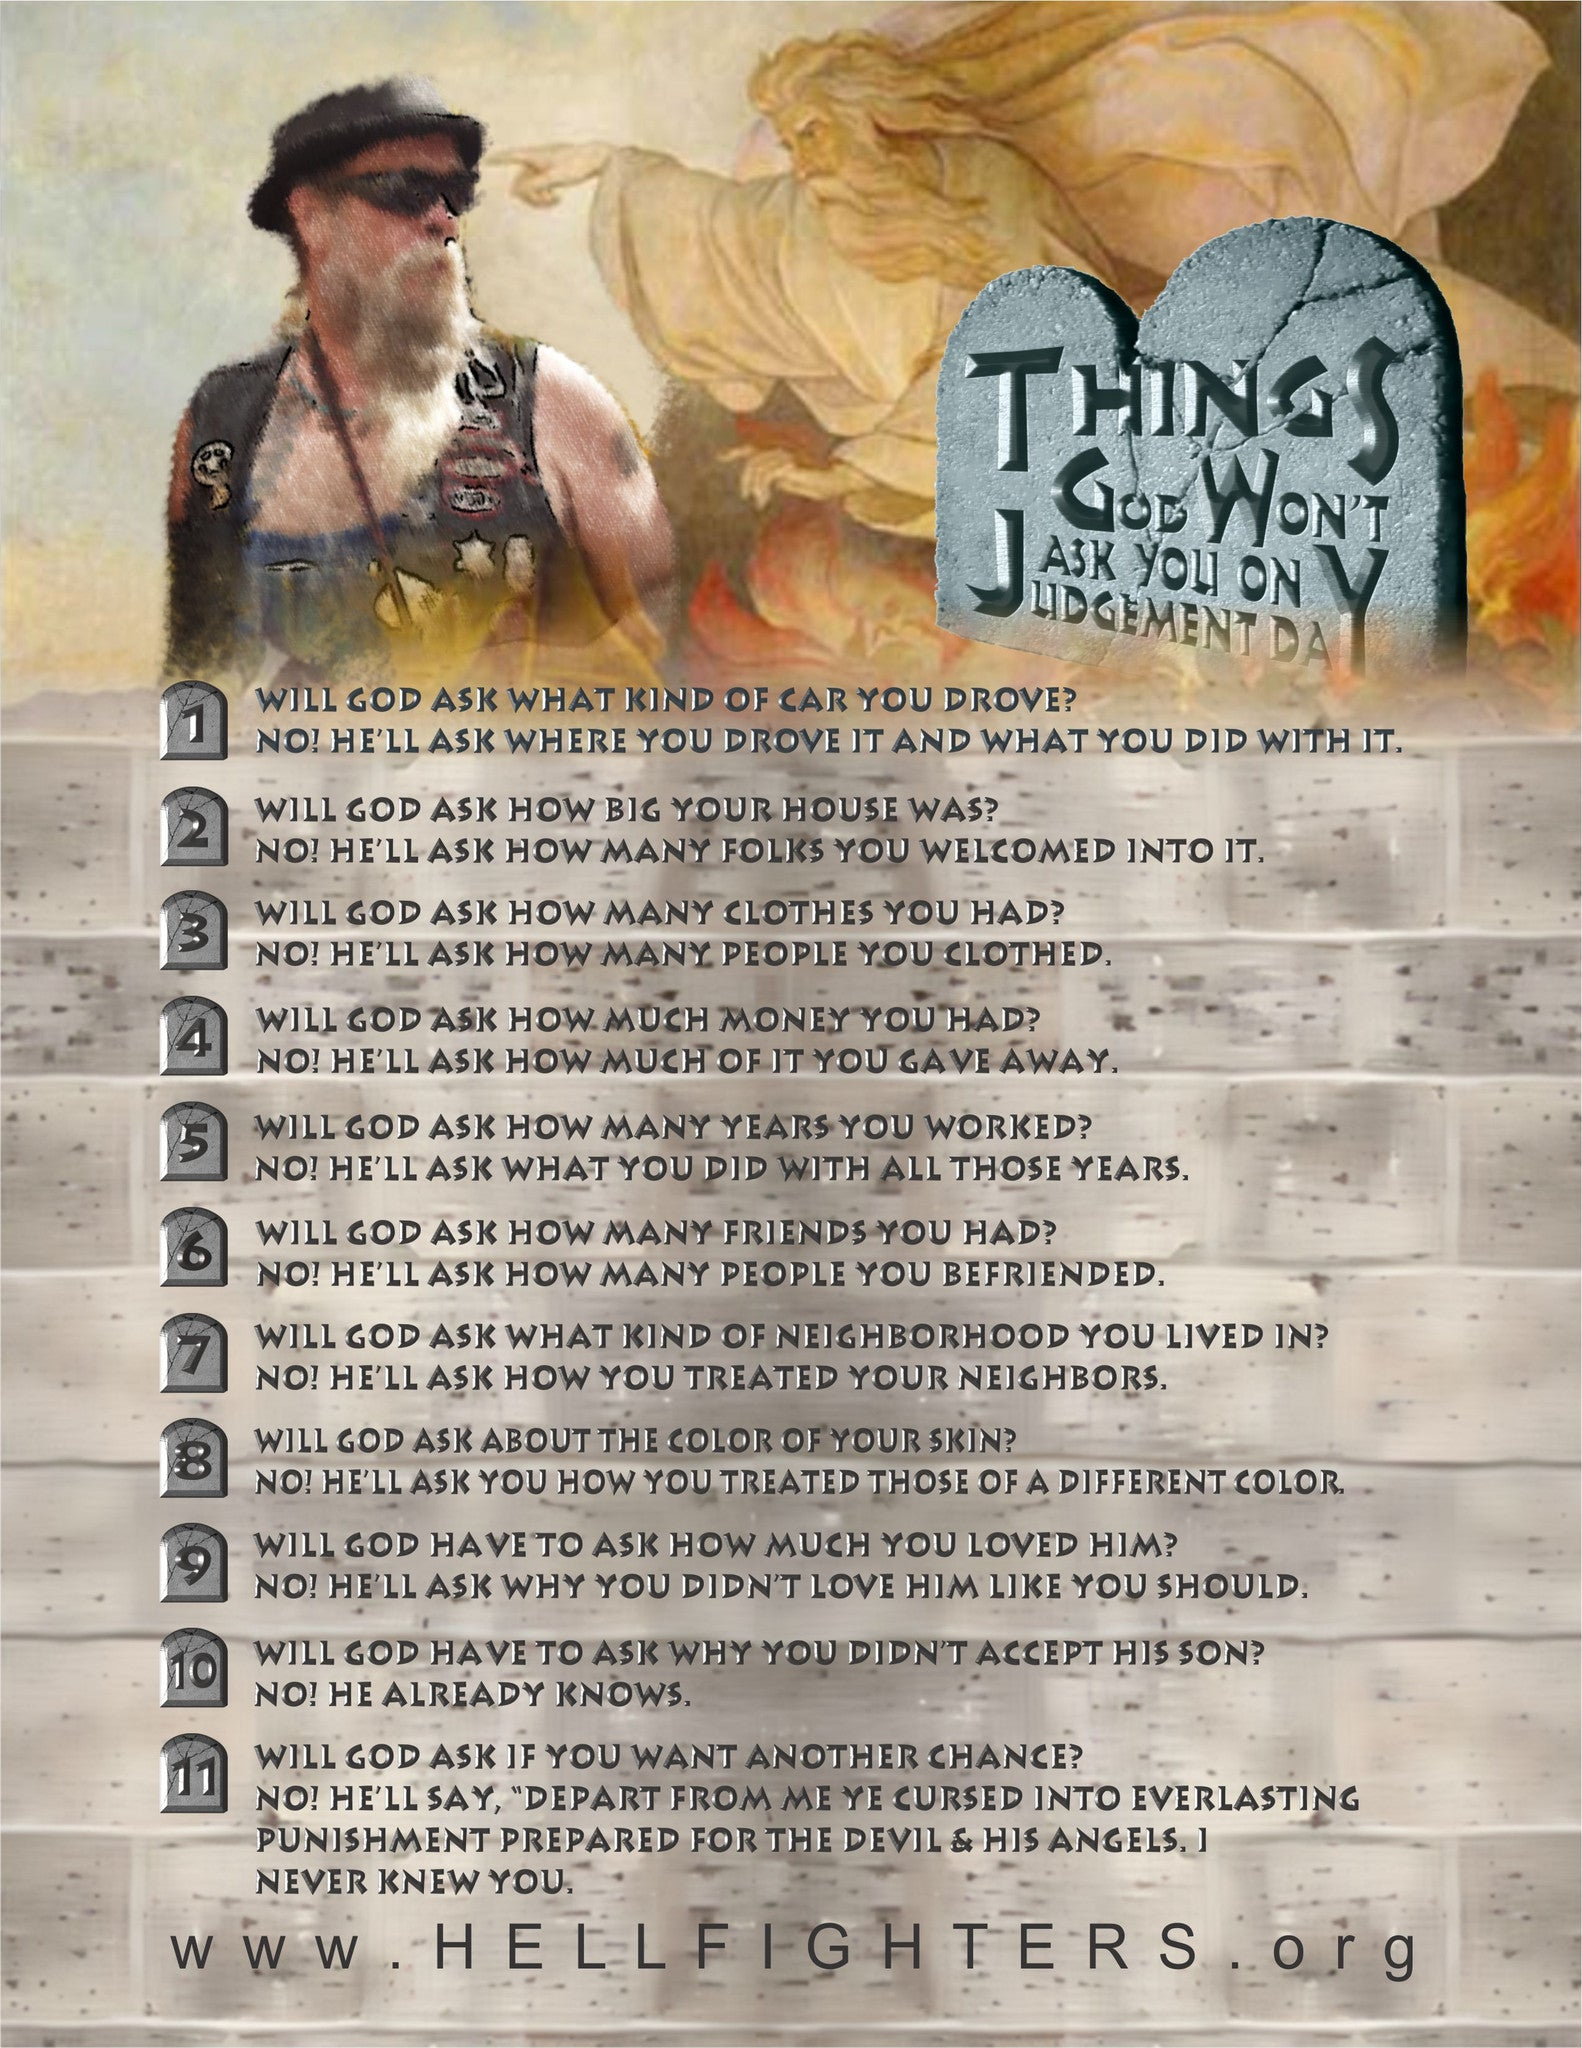 Poem/Pledge, Ten Things God Won't Ask You To Do